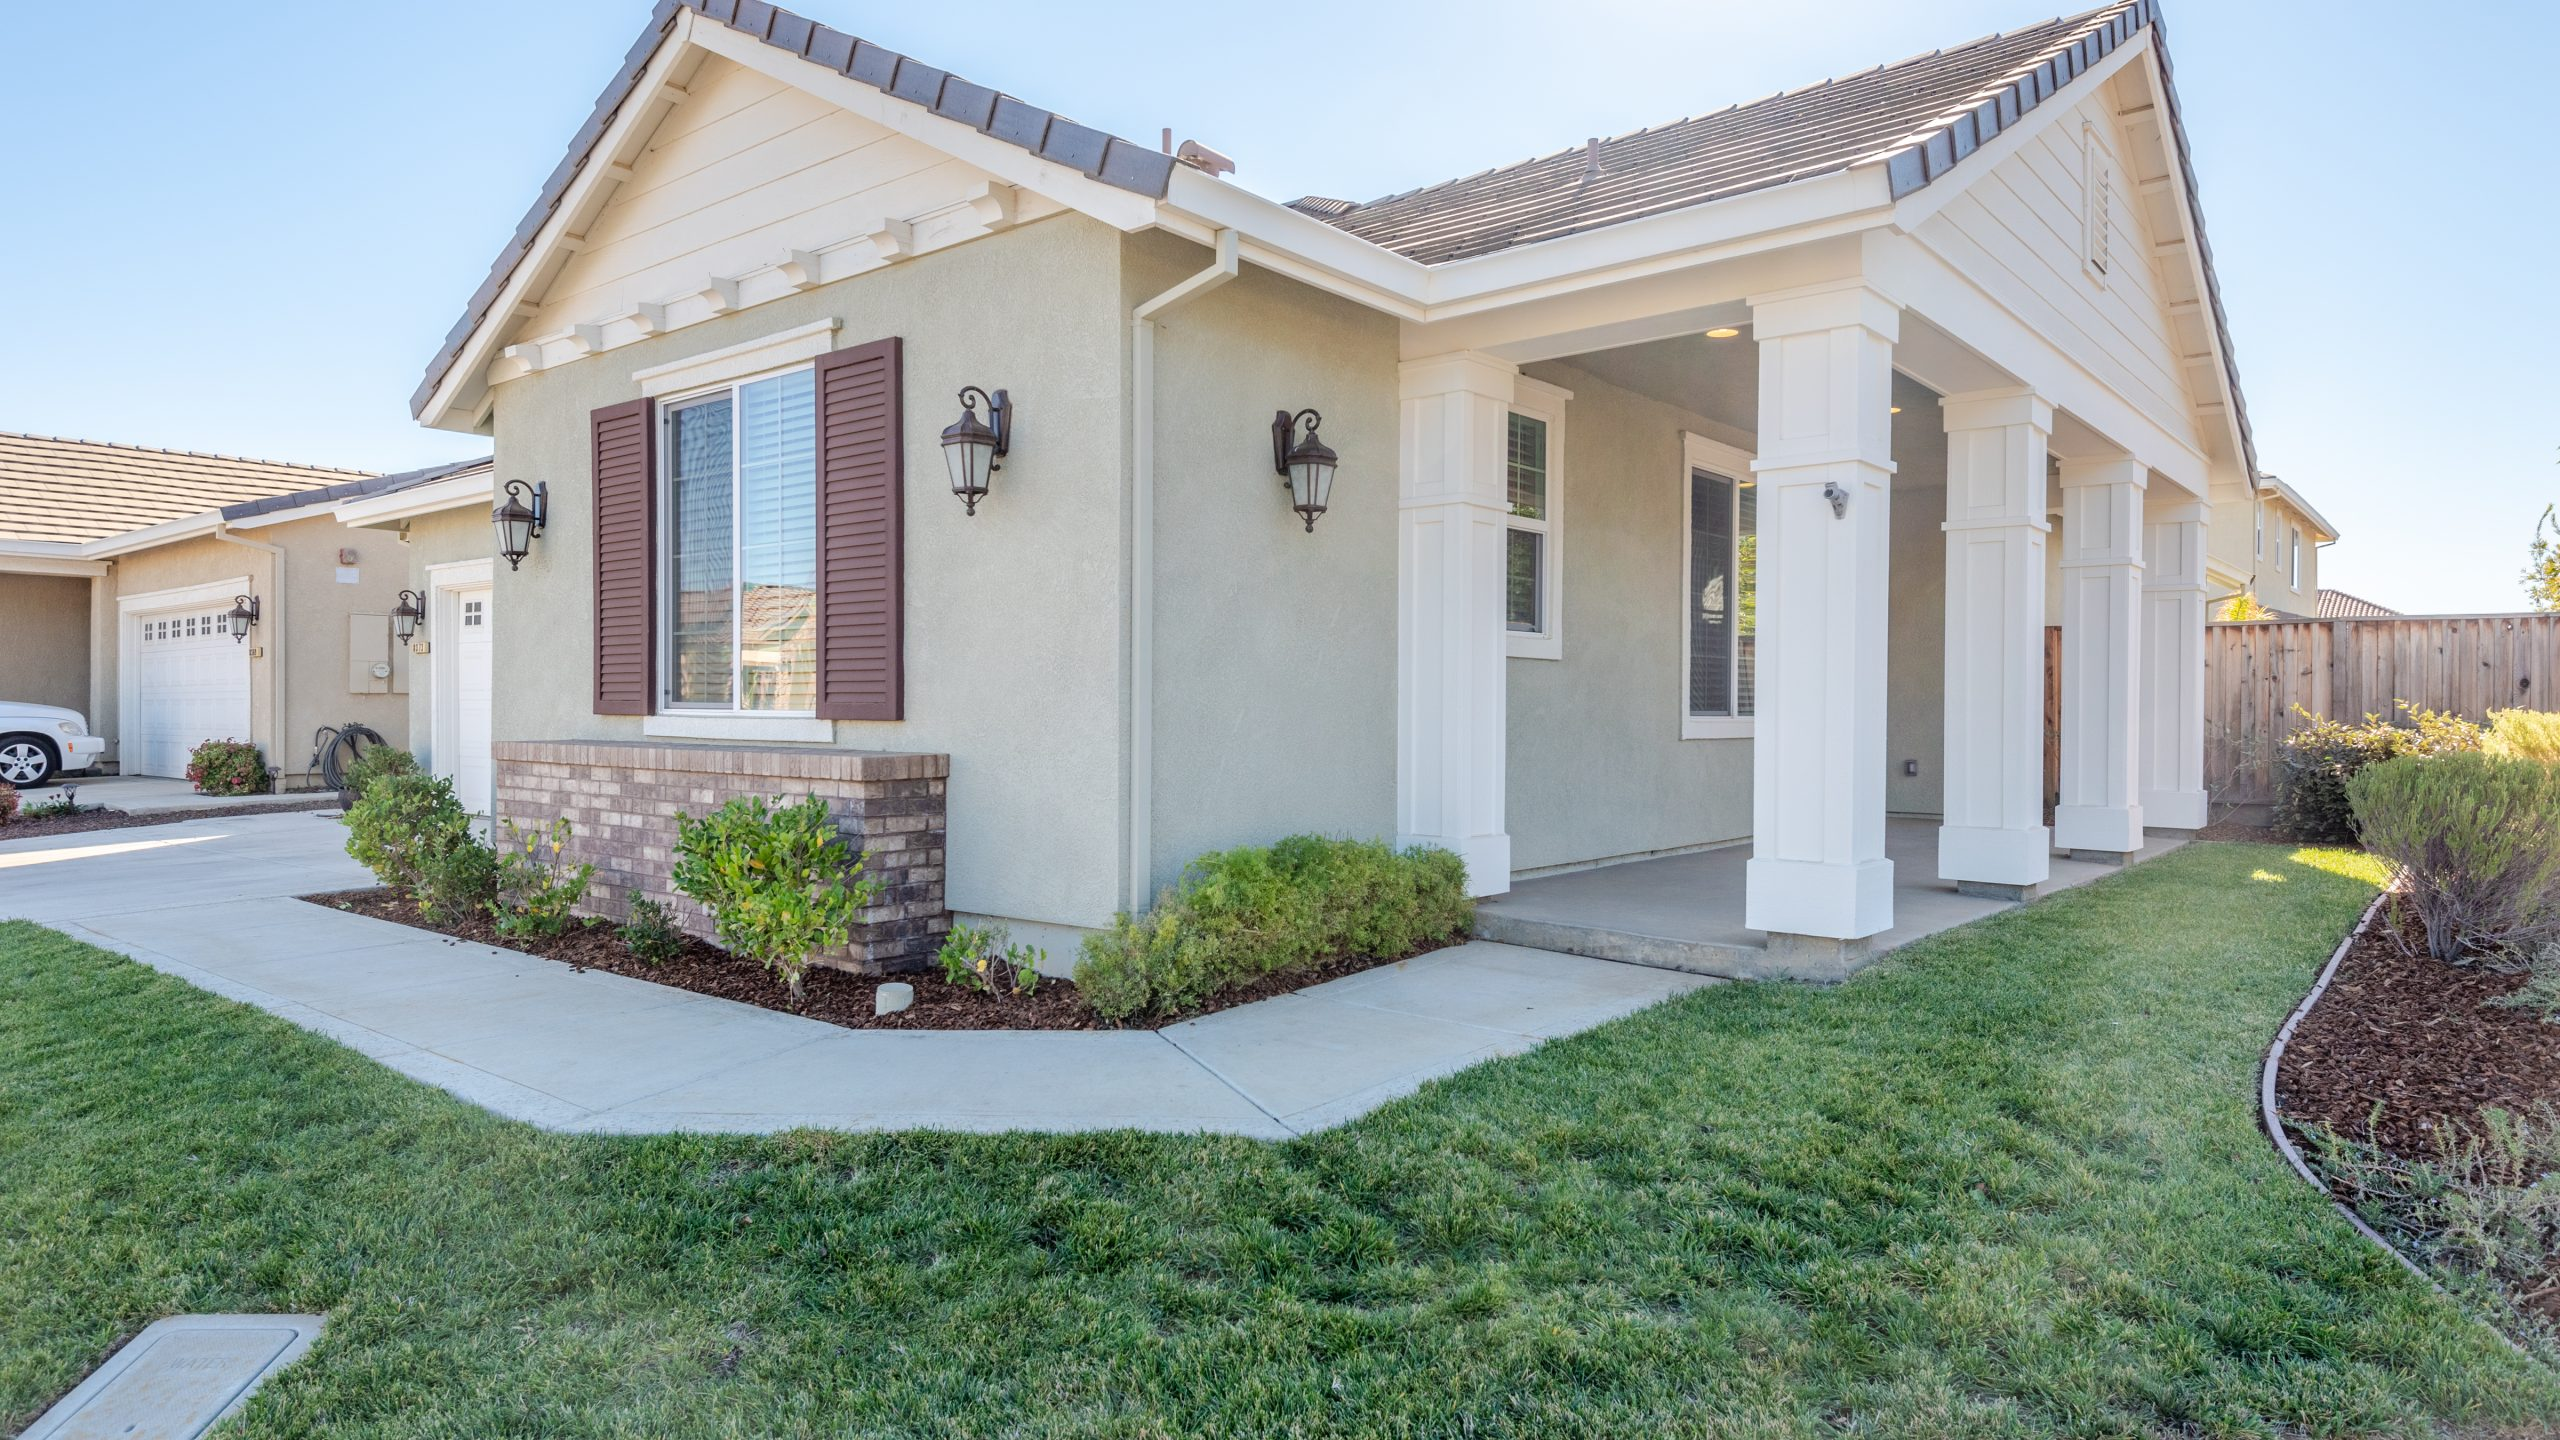 8373-Brookhaven-Circle-Discovery-Bay-3-of-42-1541610430